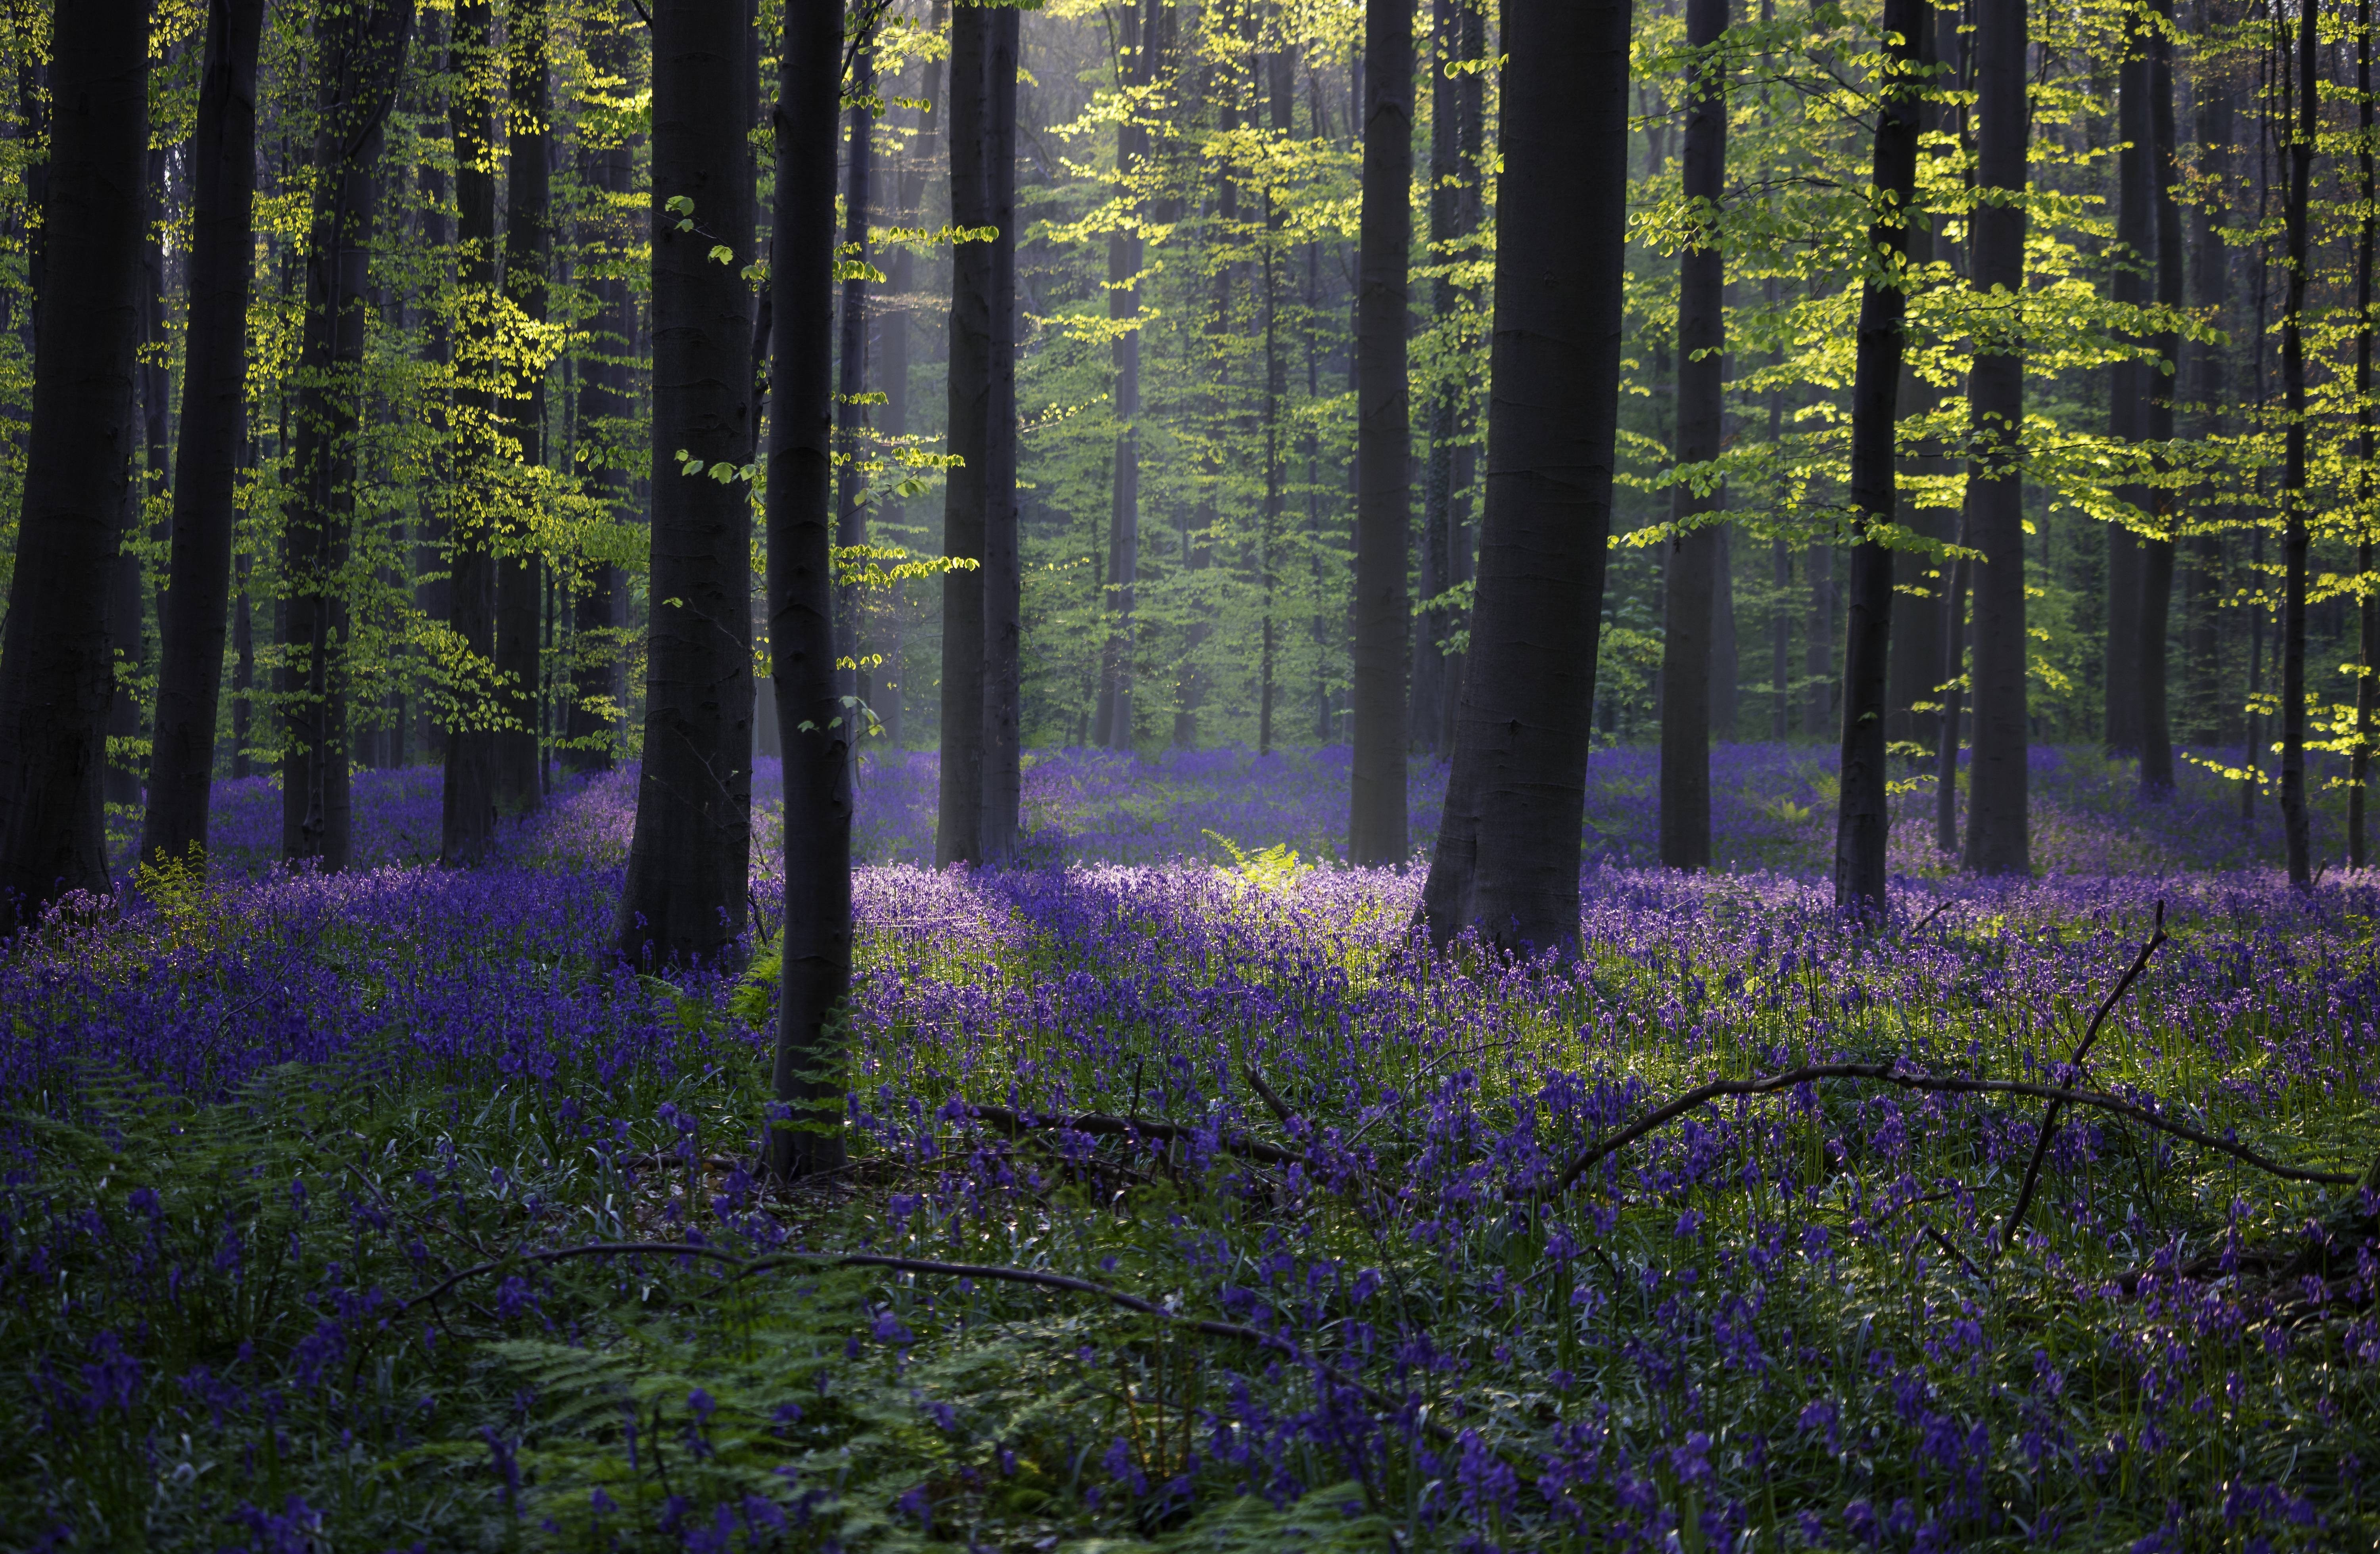 Fall Woodsy Pc Wallpaper Wallpaper Forest Bluebell Sunlight Spring Halle